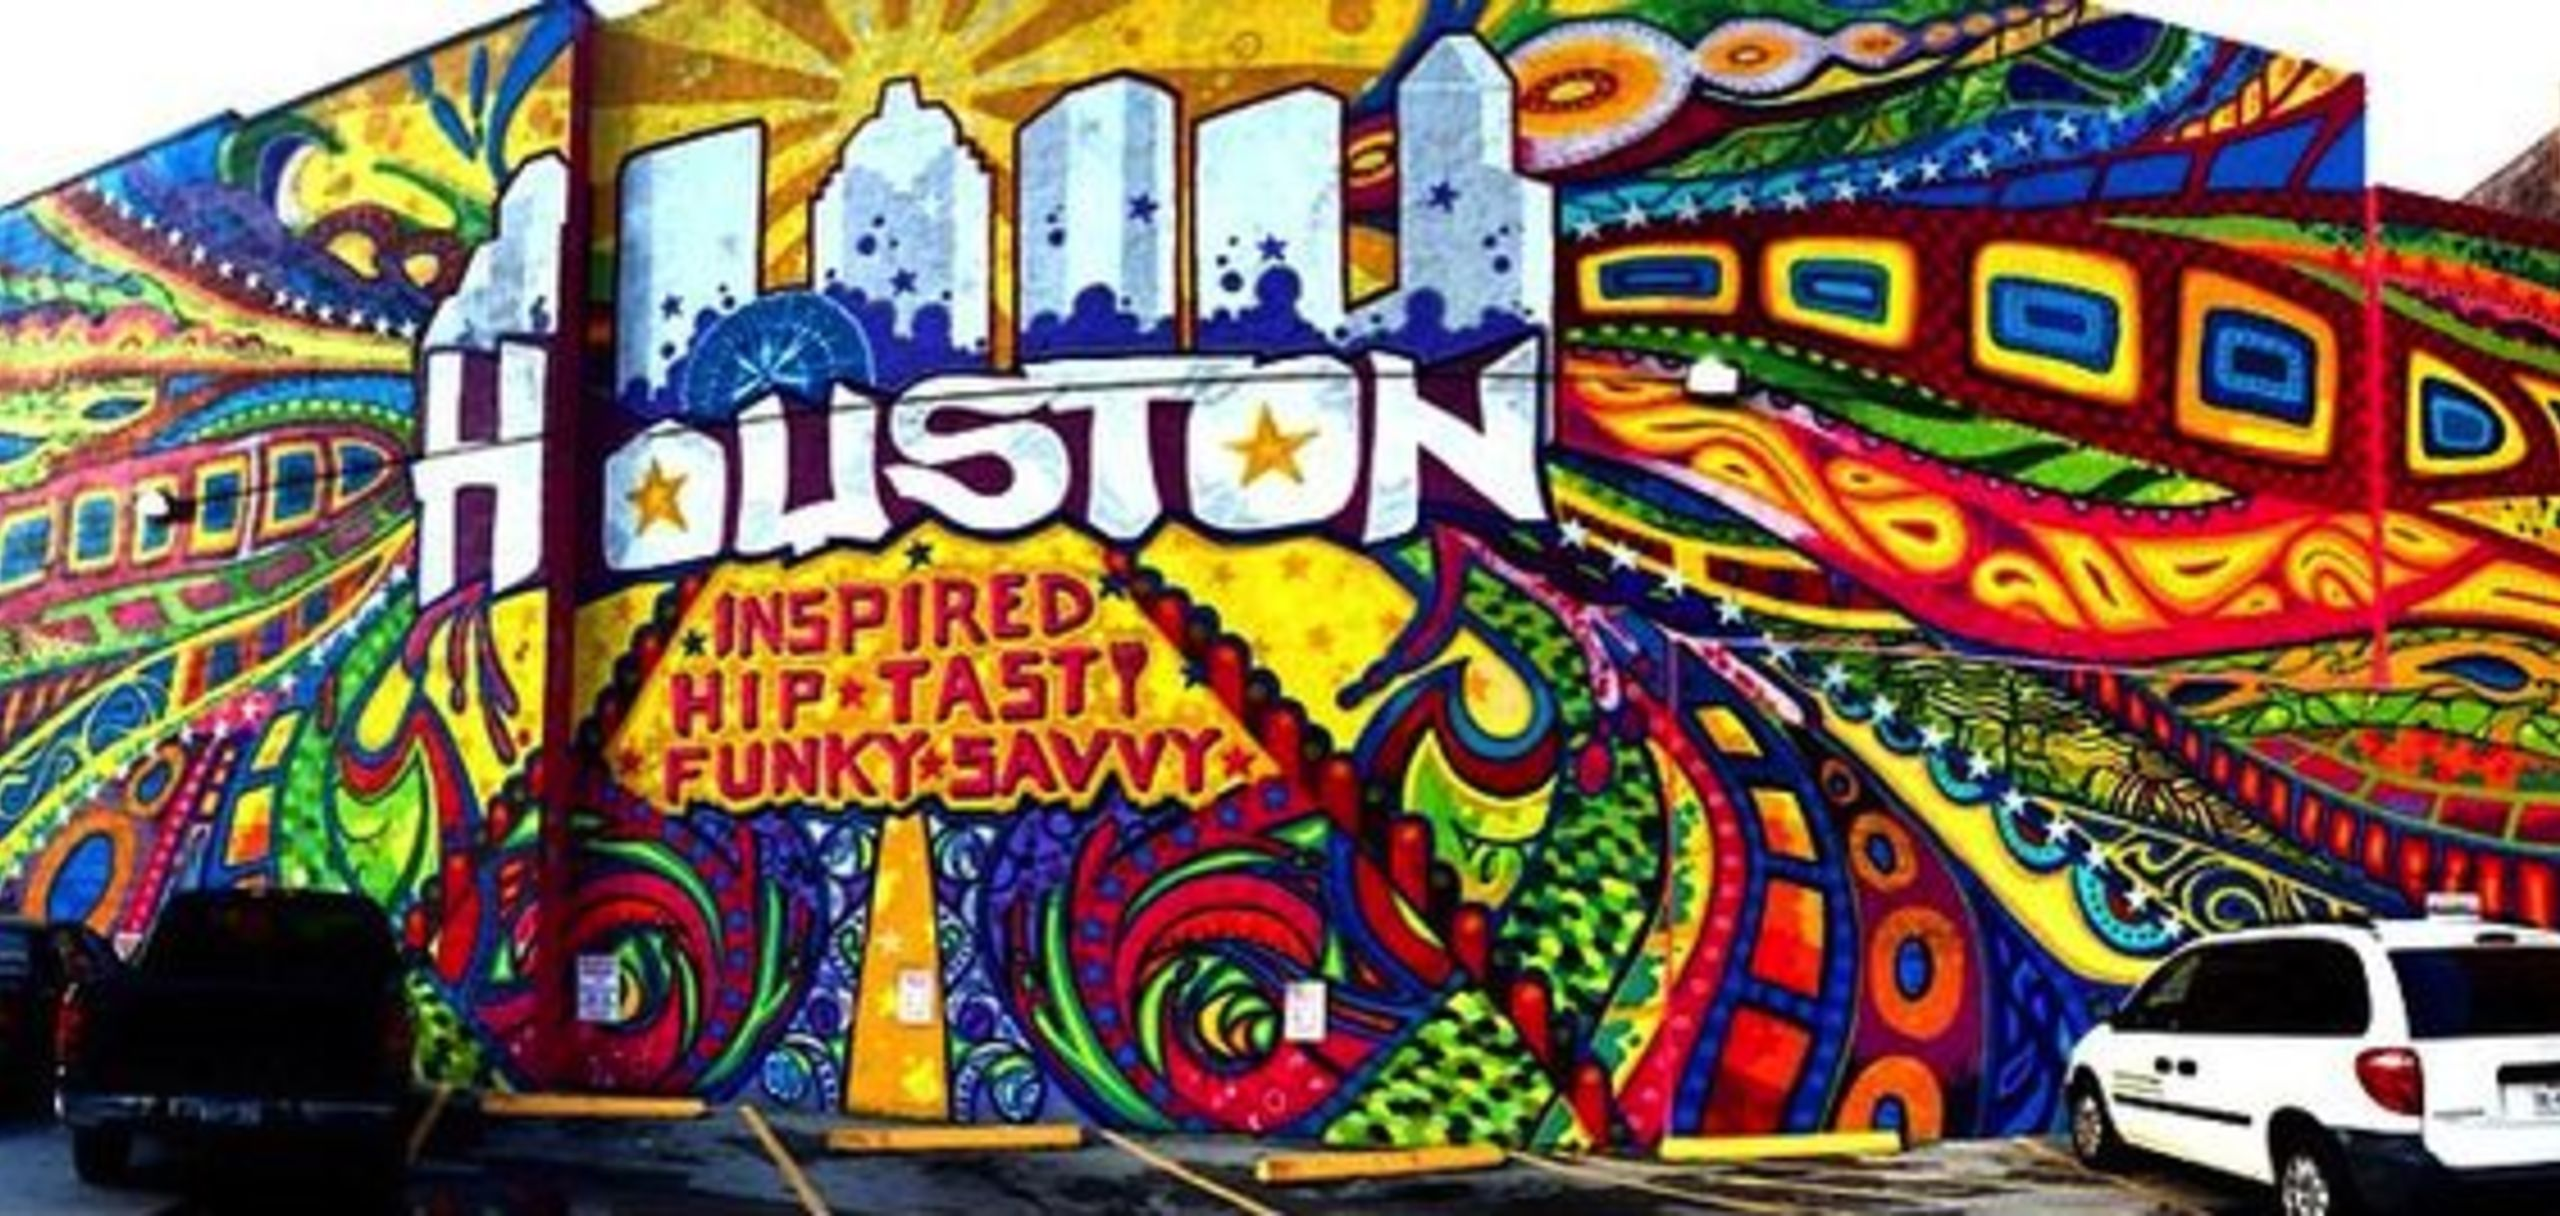 Houston--America's most diversified city! Inspire, Hip, Tasty, Funky, Savvy